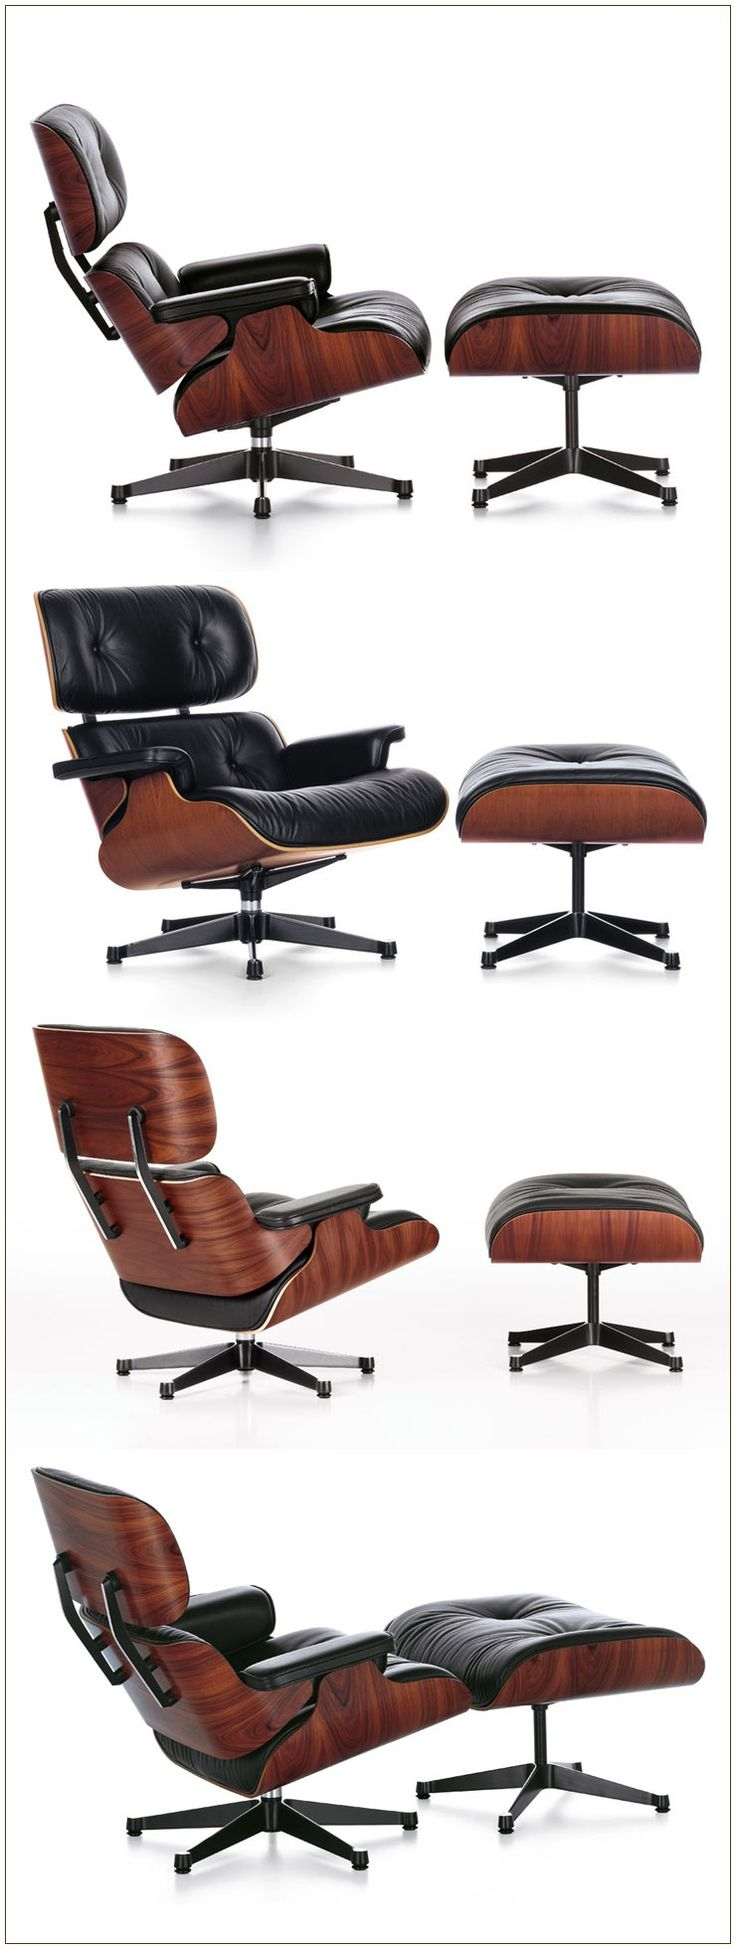 Lounge Chair, Charles Eames, 1956. Classic. I want to try it at least once